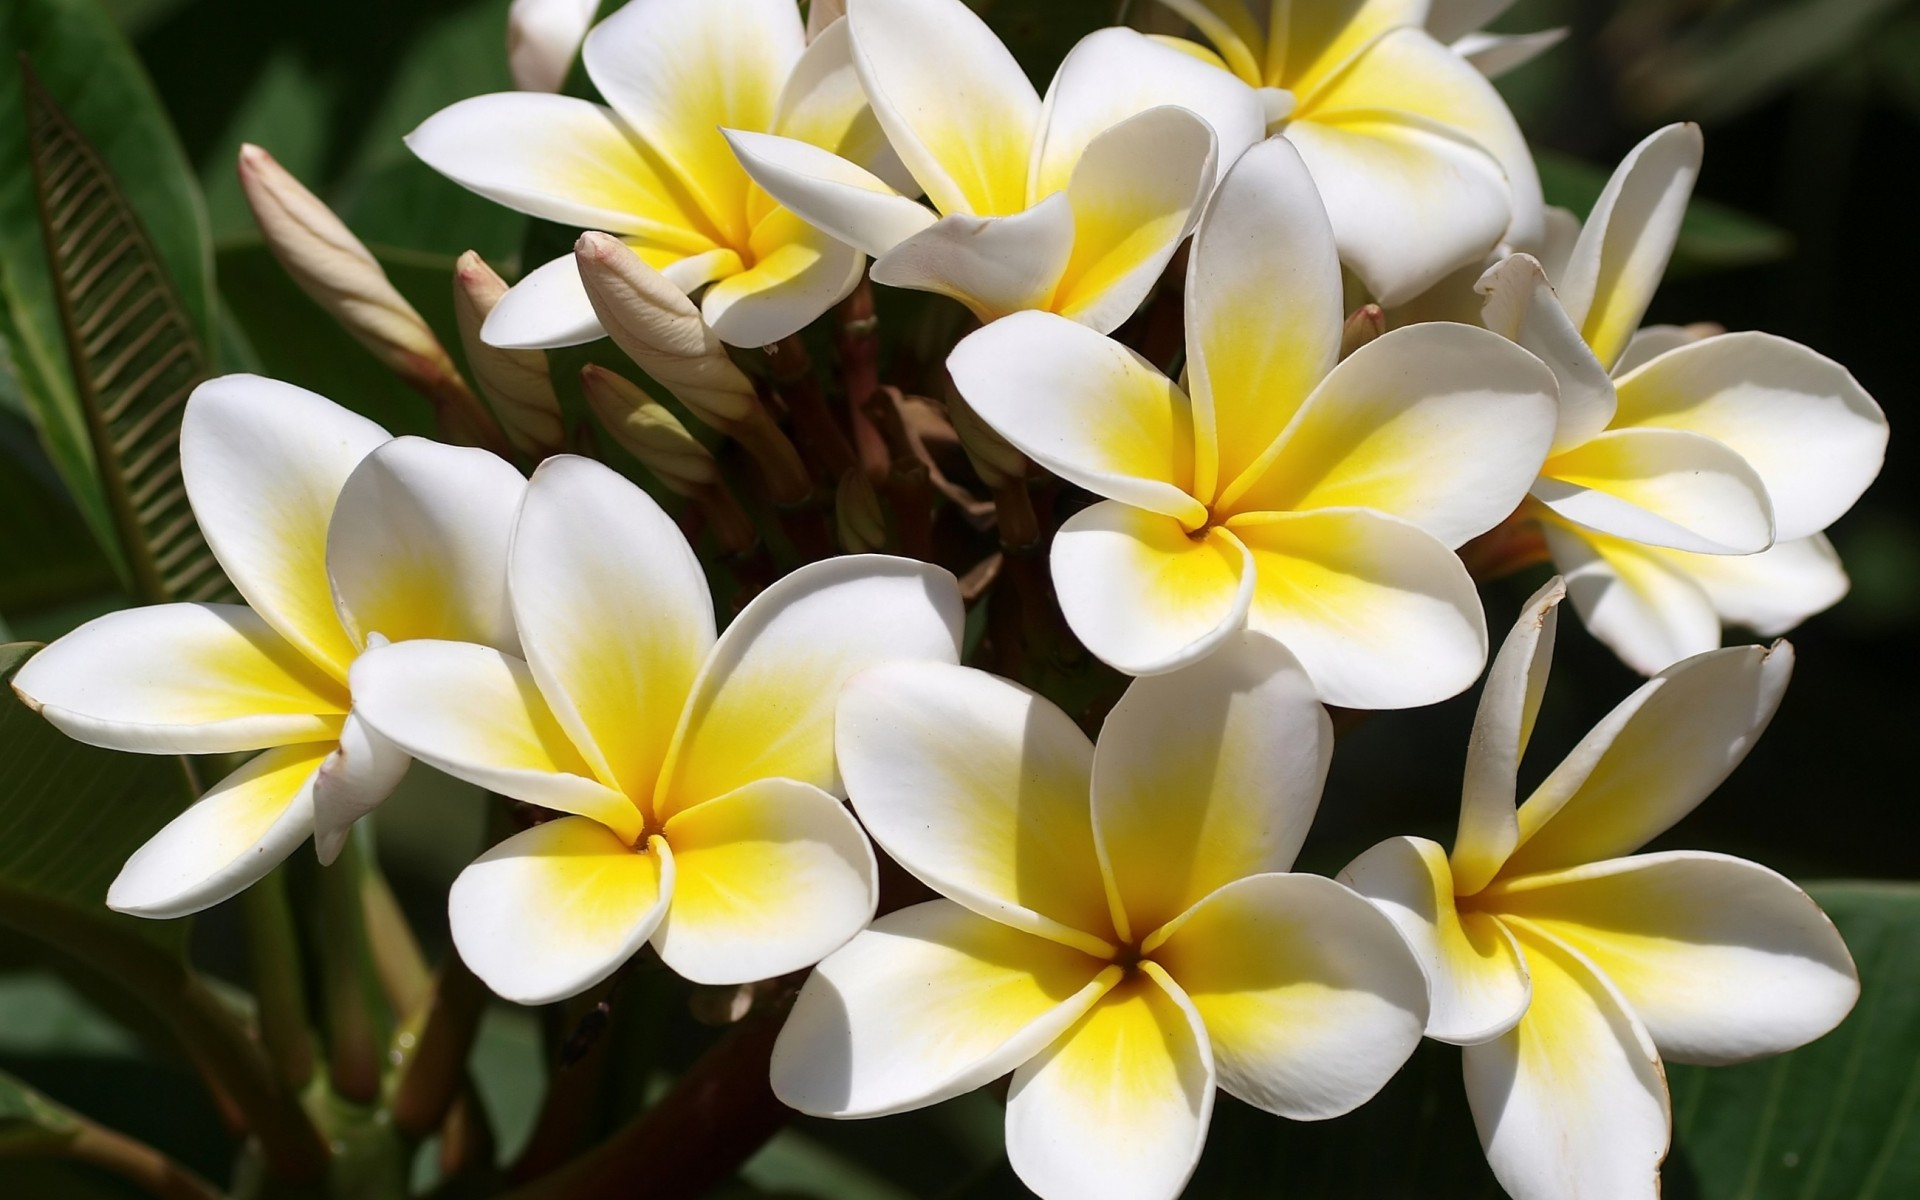 flowers Plumeria frangipani white yellow wallpaper background